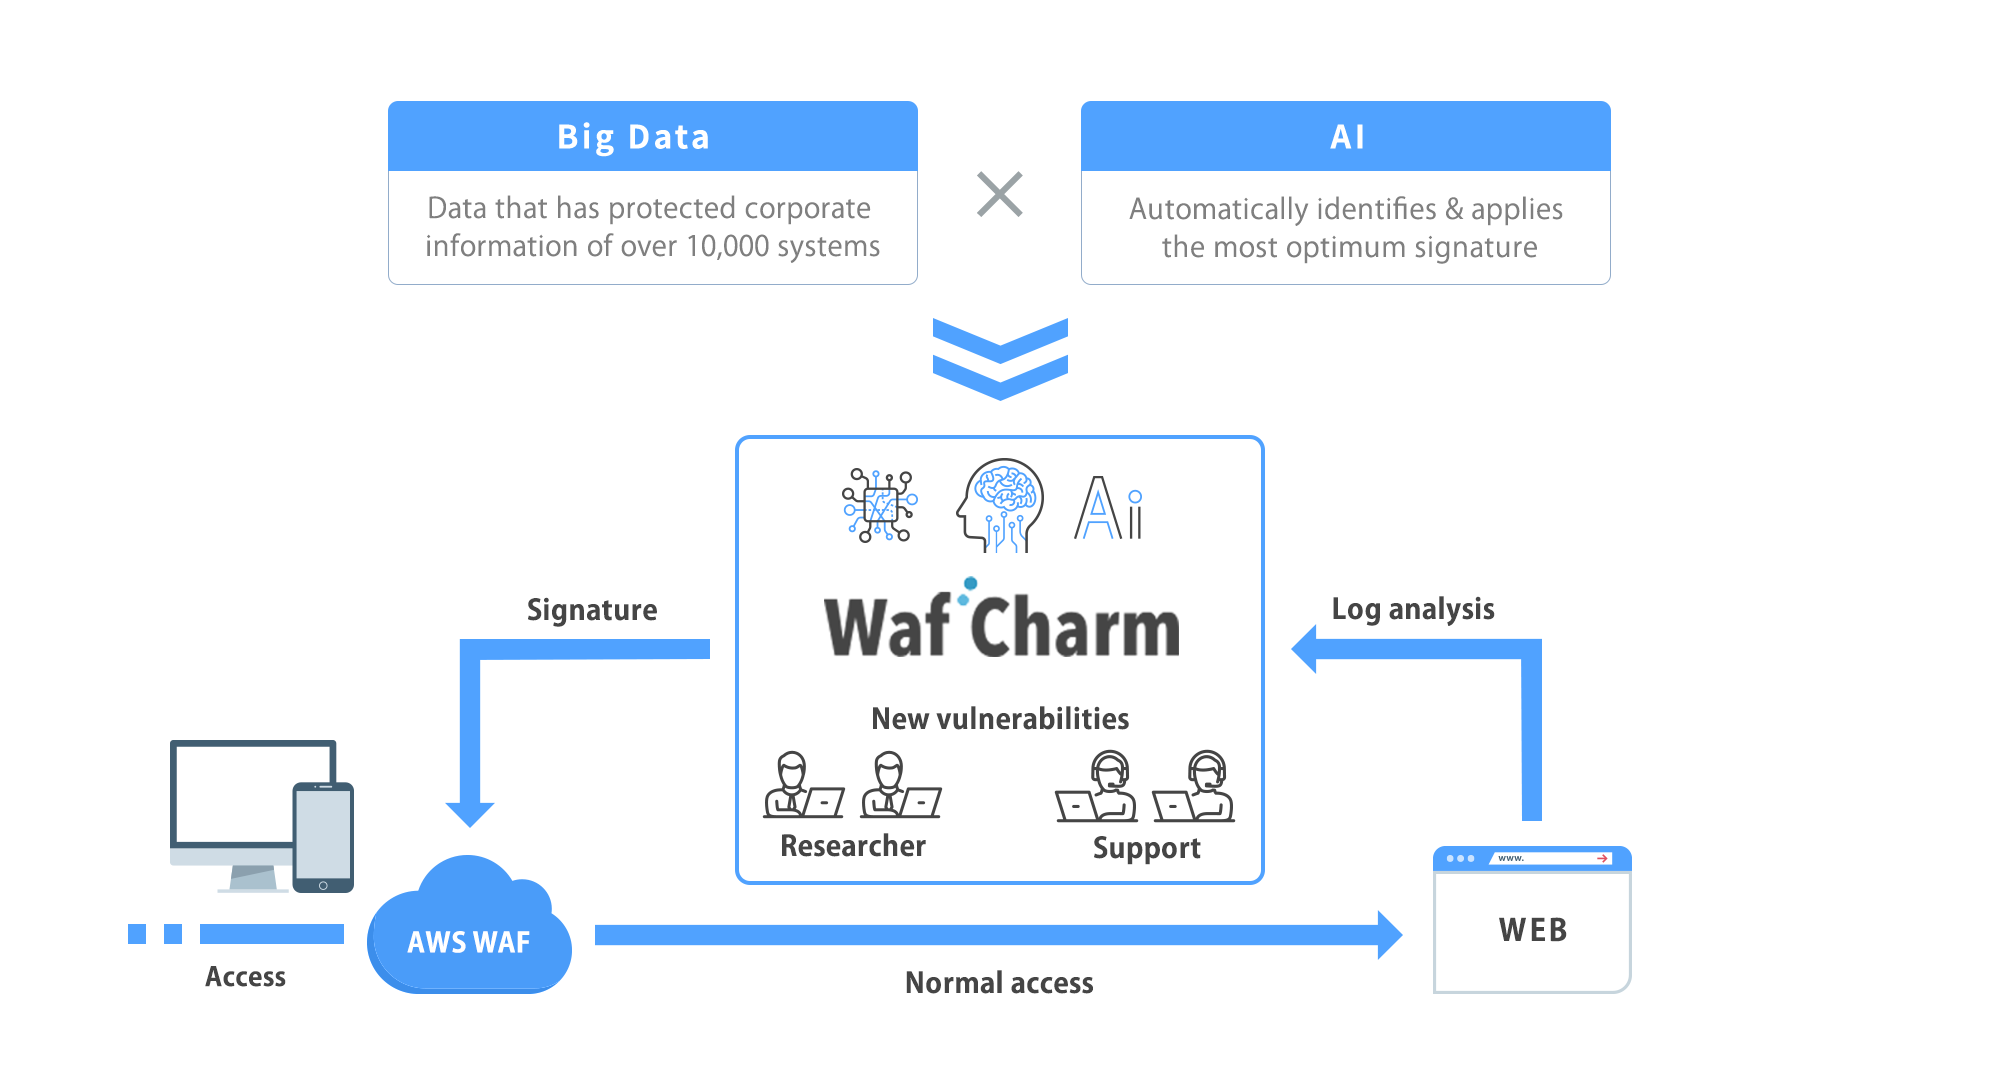 Service for automation of AWS WAF operations by means of AI & Big Data